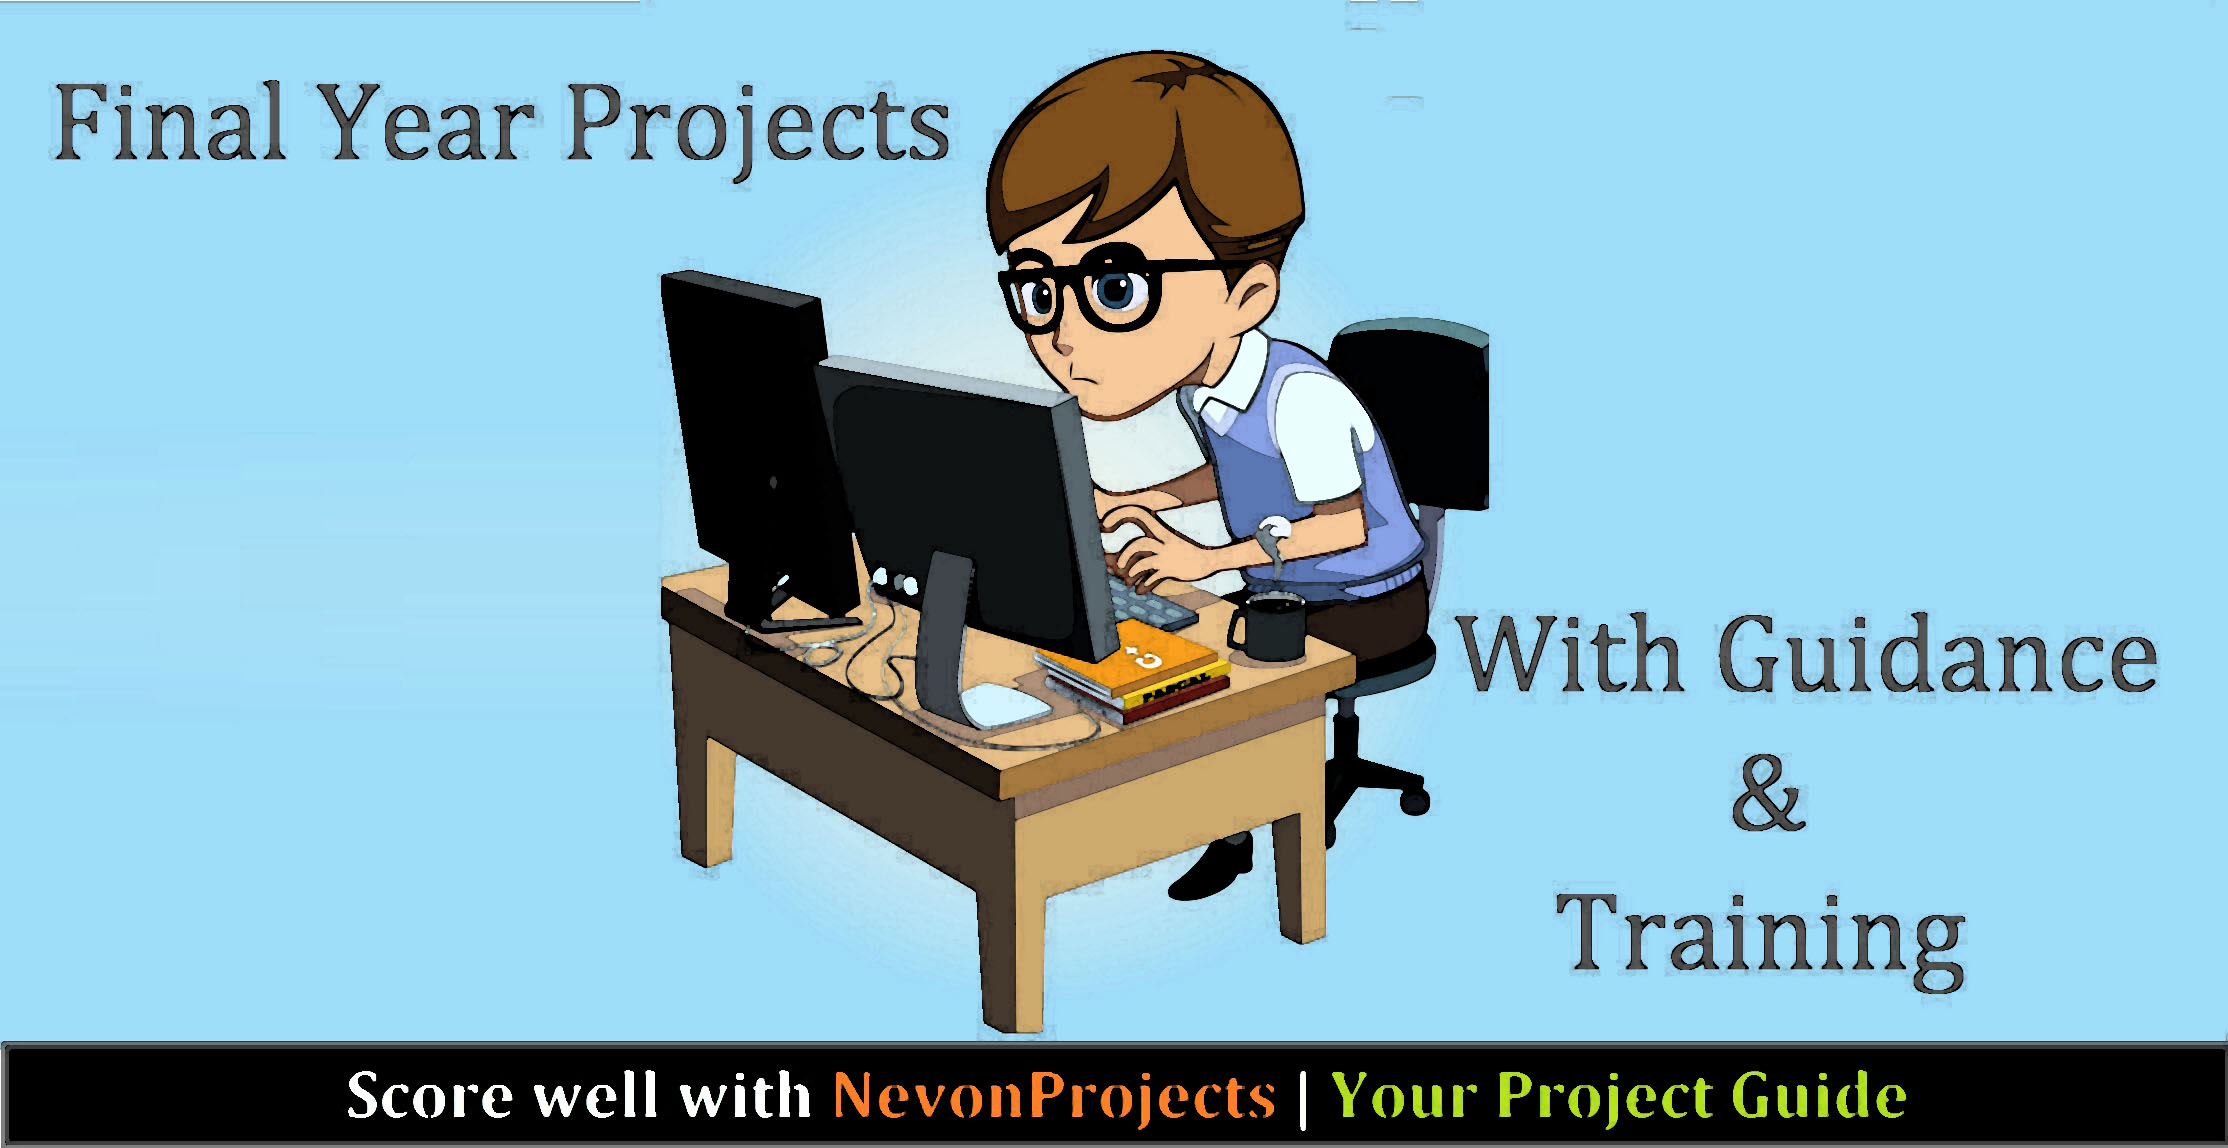 Final Year Projects For Engineering Students | NevonProjects